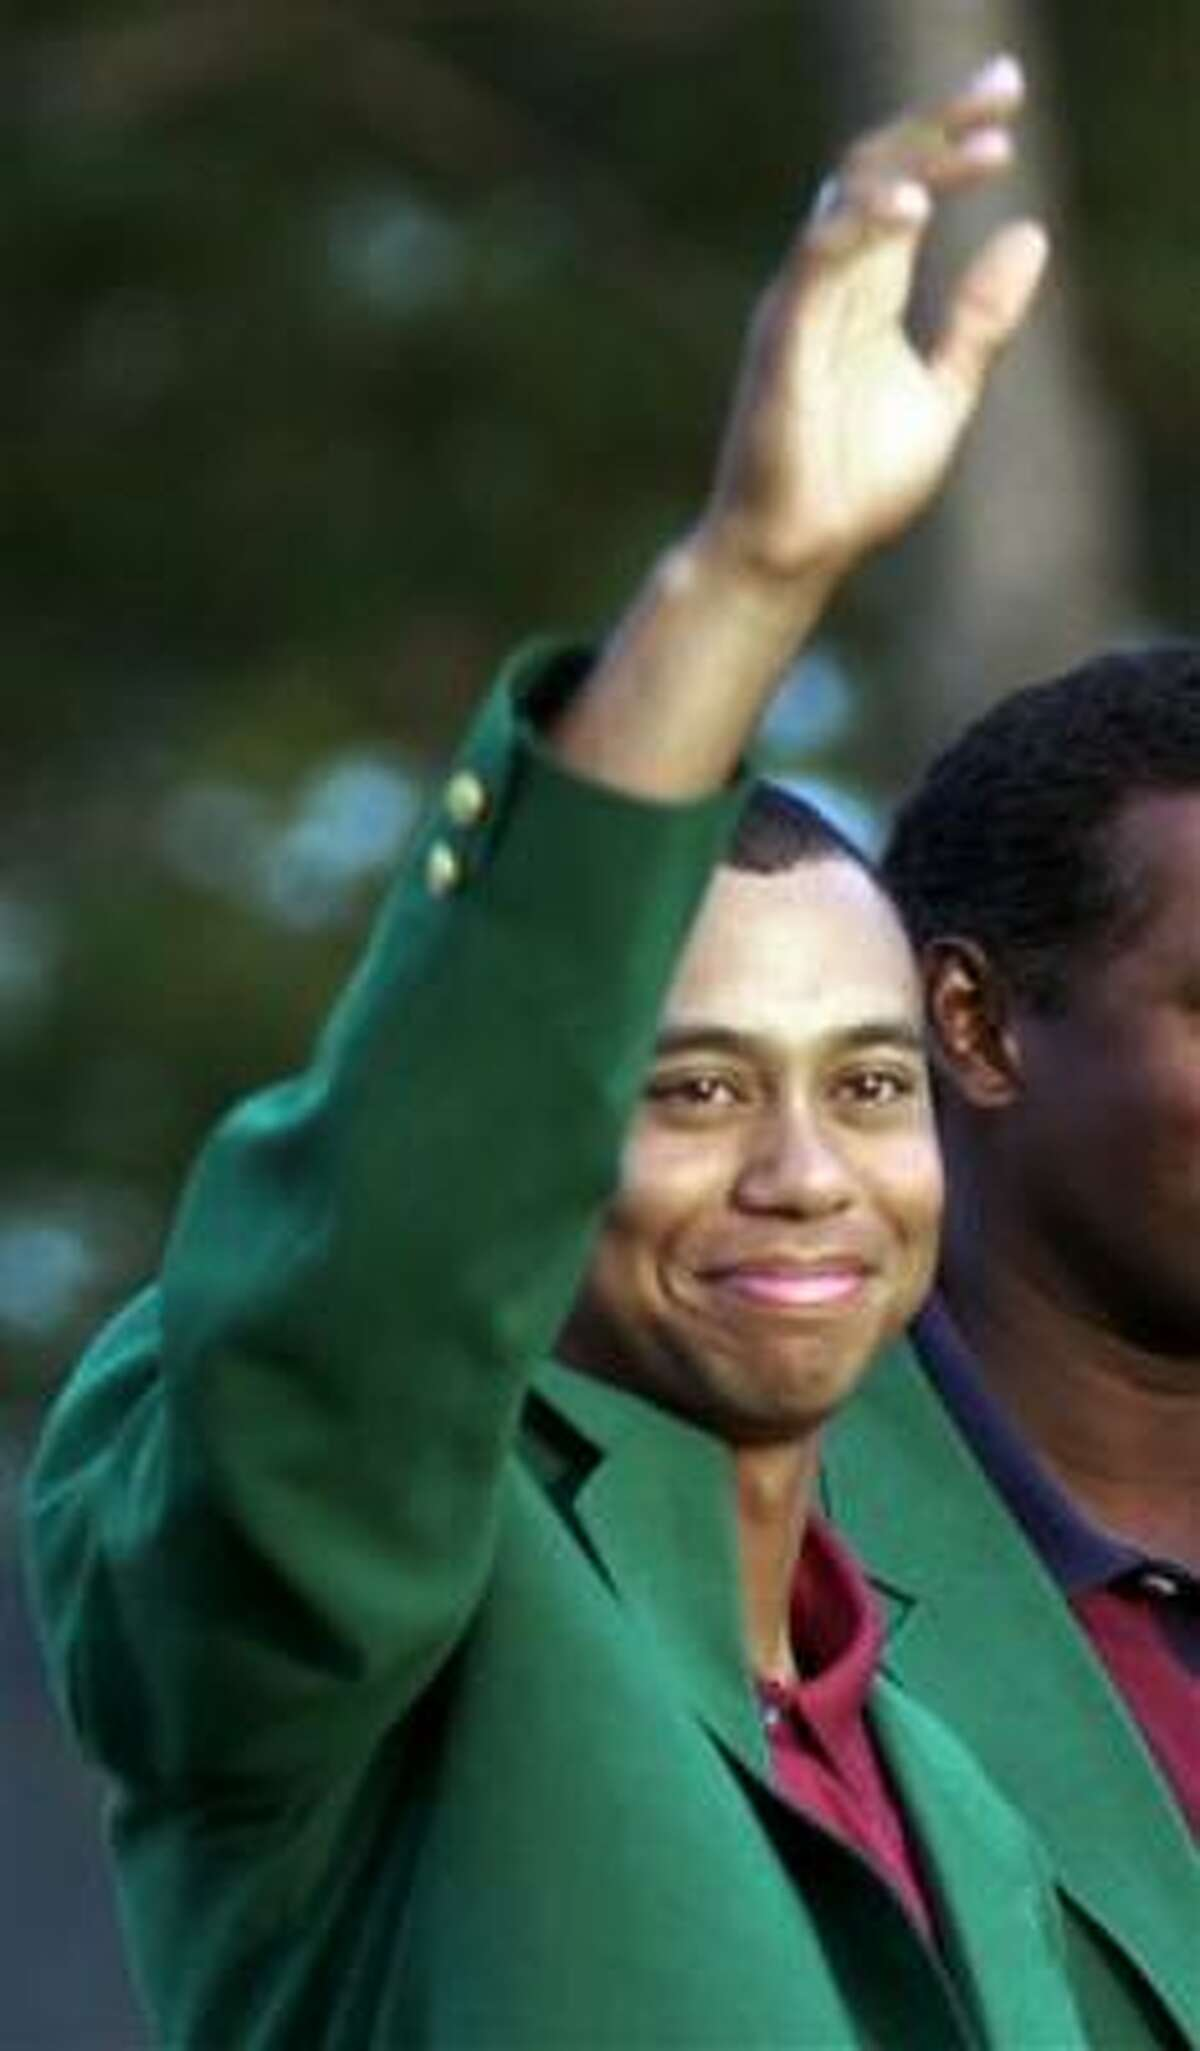 Tiger Woods, seen with the green jacket in 2001, has has not competed since Nov. 15 when he won the Australian Masters for his 82nd victory worldwide.